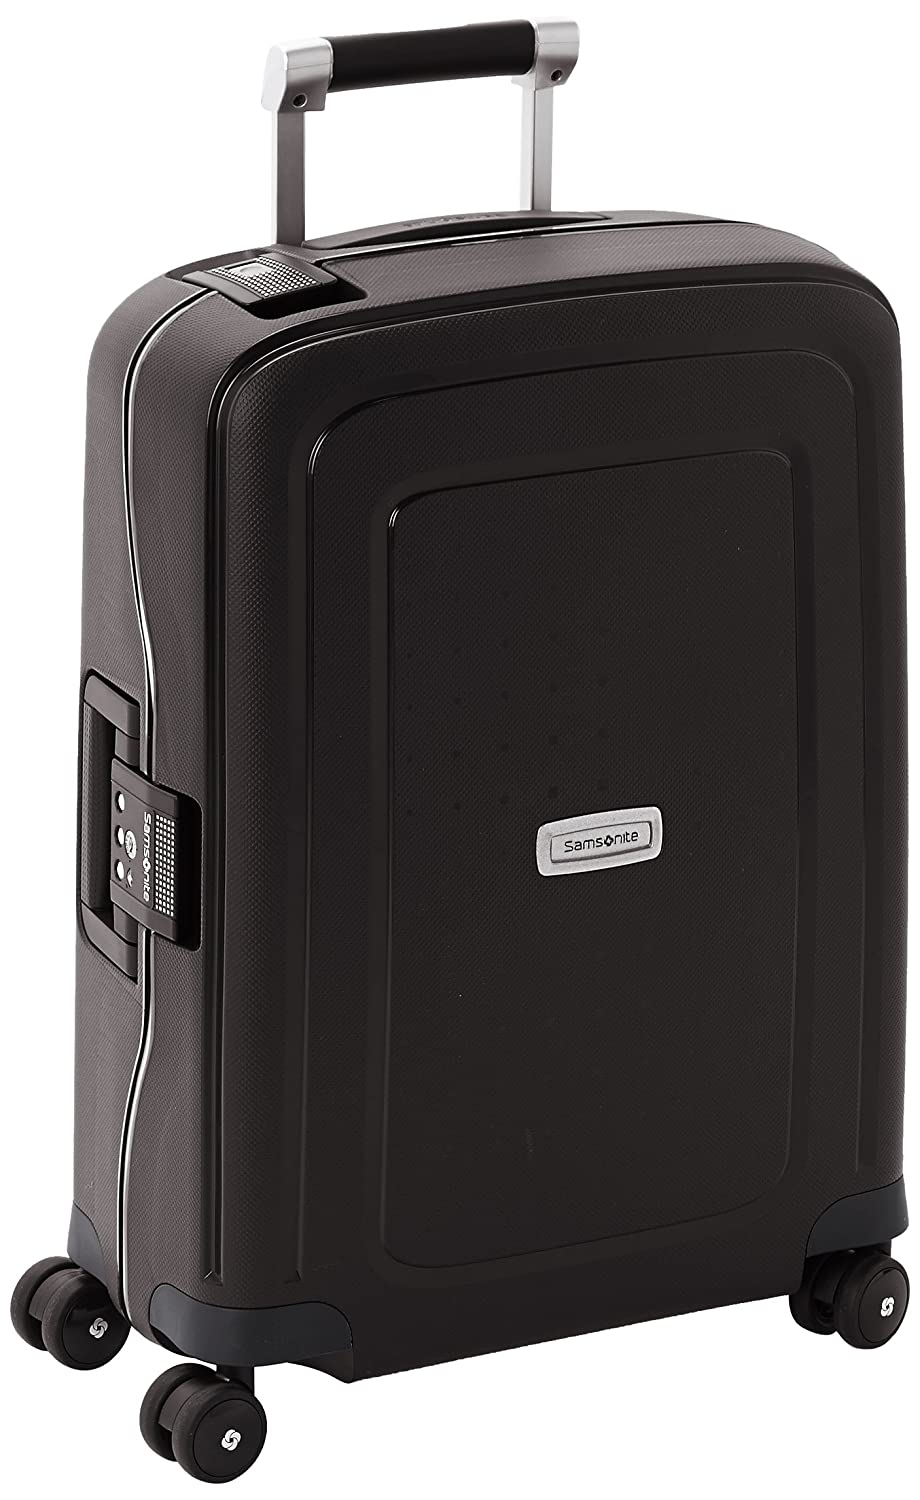 Samsonite S'Cure DLX Spinner Test